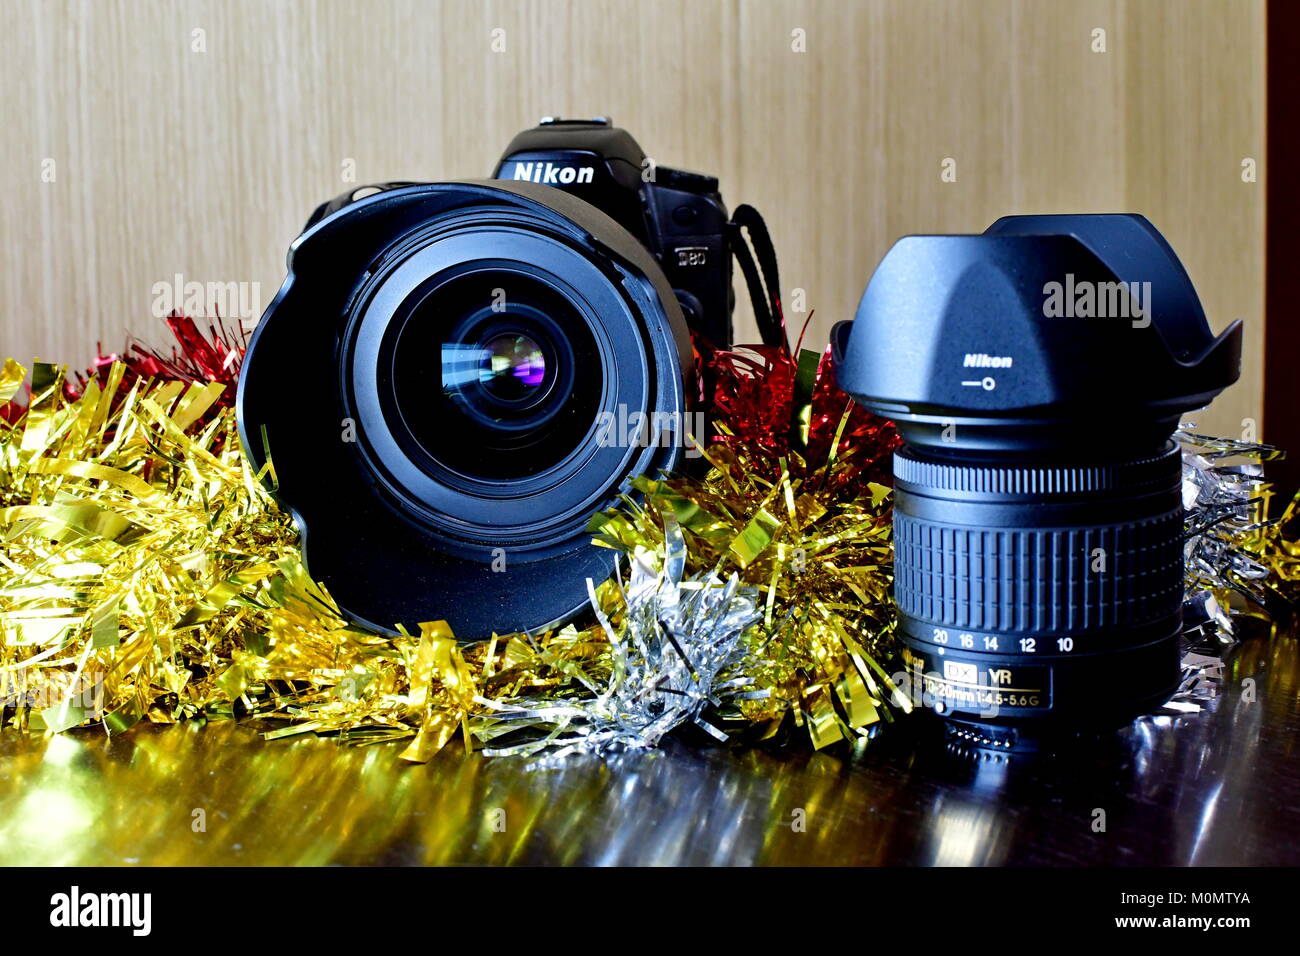 Nikon DSLR D80 and battery pack and Lenses on display and Christmas decorations as well Stock Photo